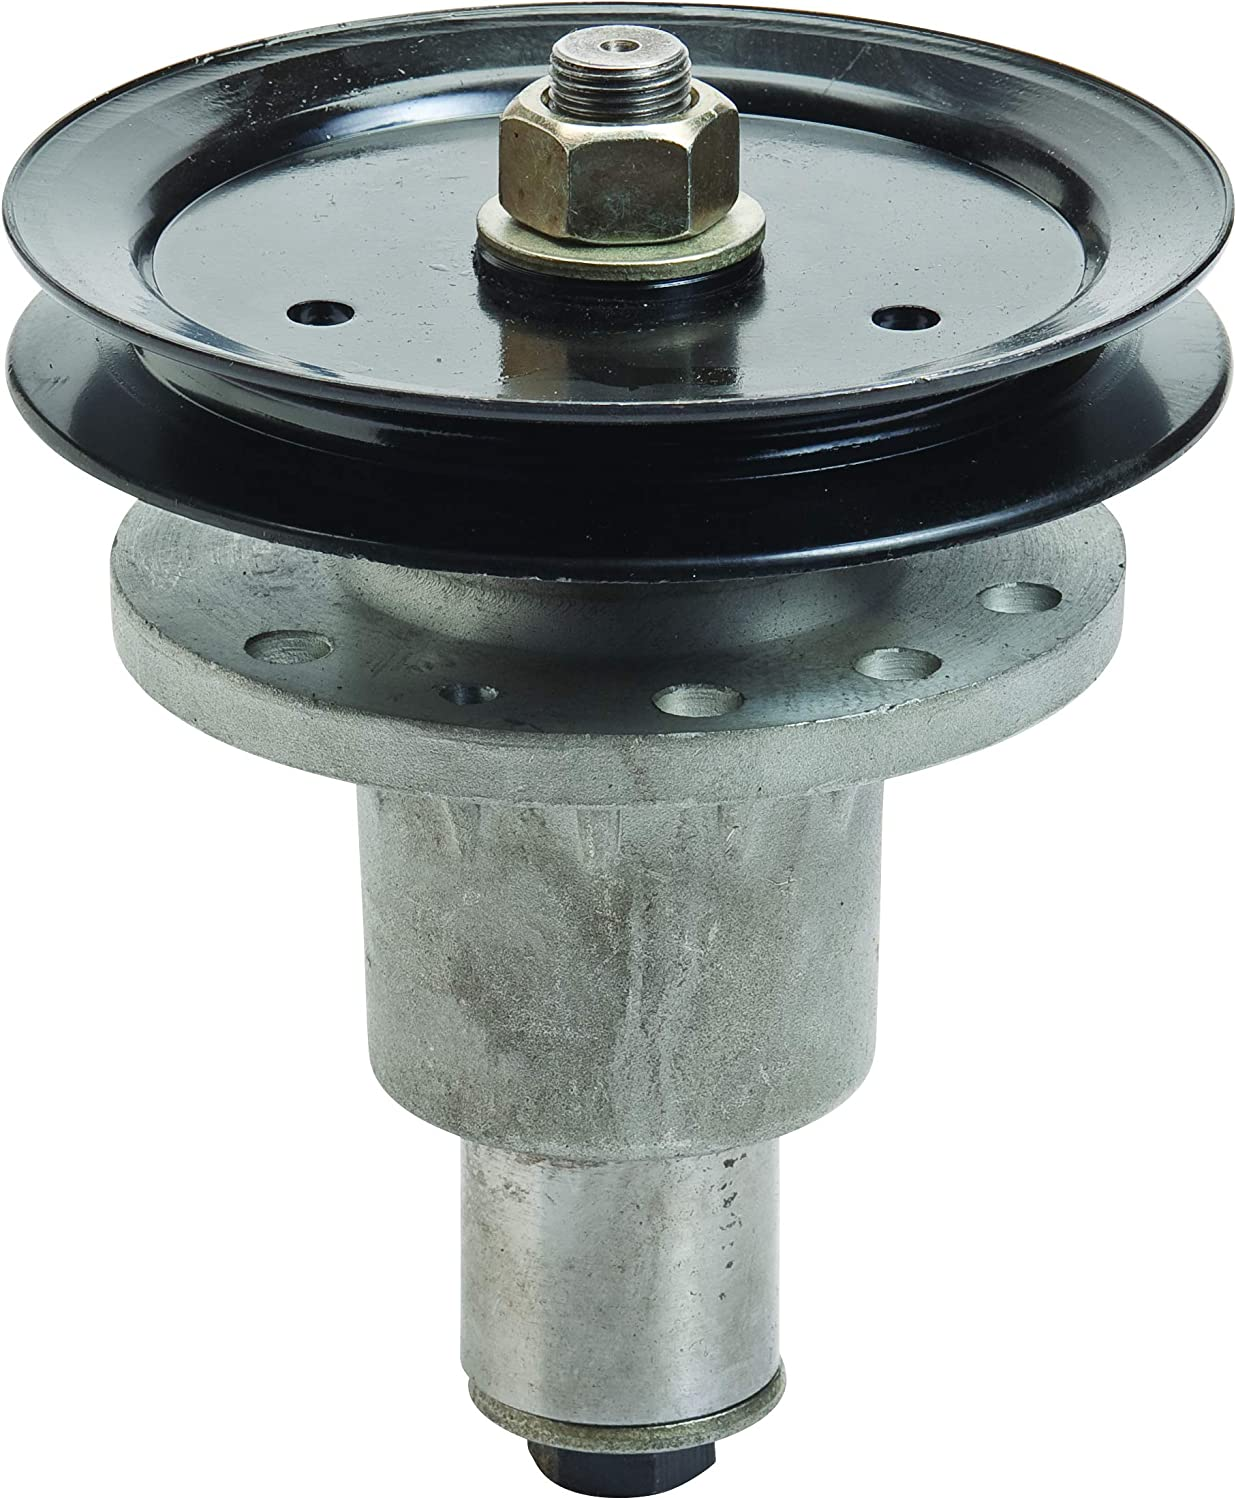 EXMARK REPLACEMENT DECK SPINDLE PART #103-3200,NEW